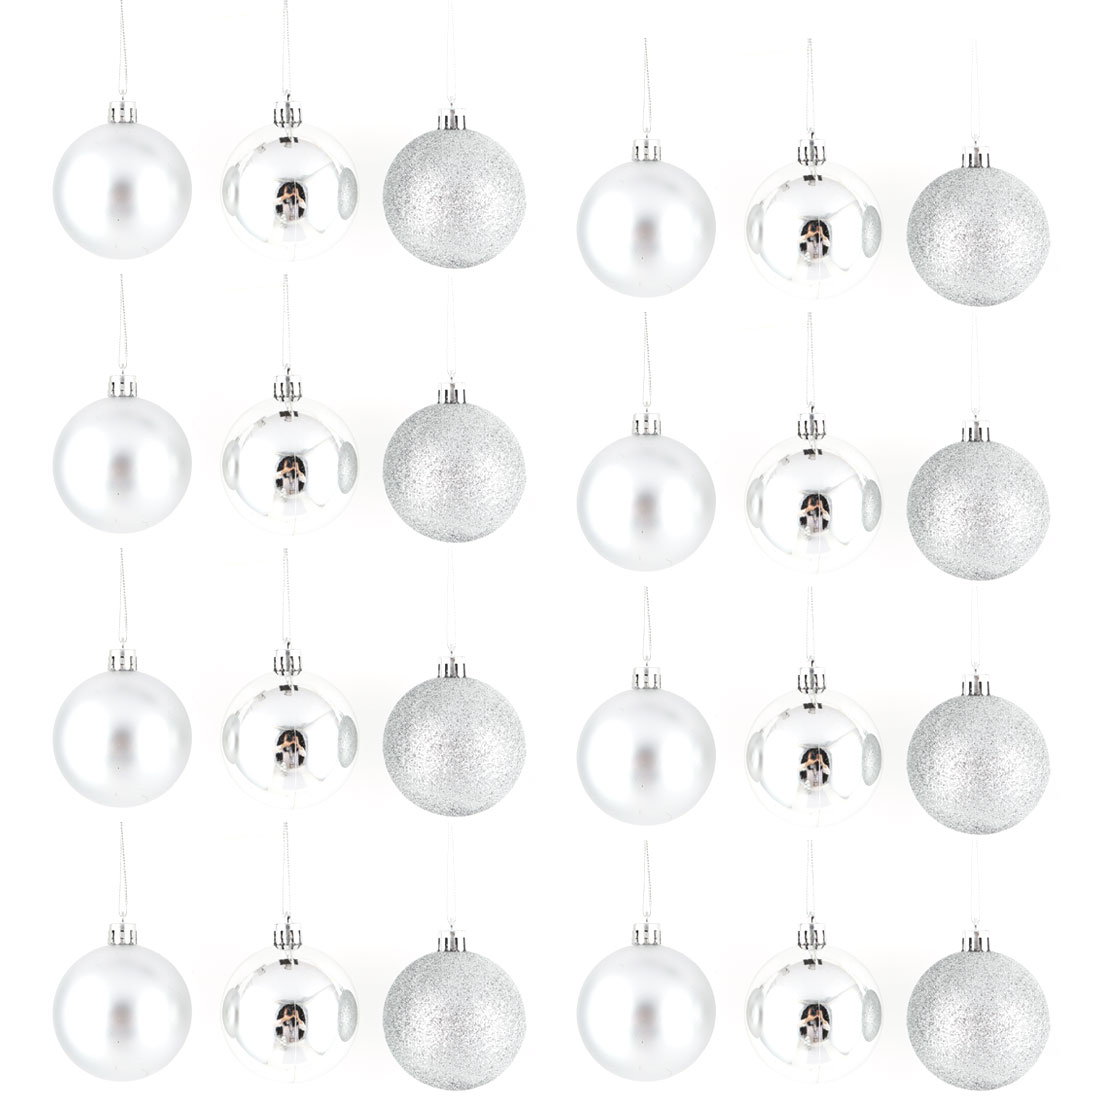 Holiday Christmas Party Plastic Pendant Tree Ornament Ball Silver Tone 6cm Dia 24 Pcs